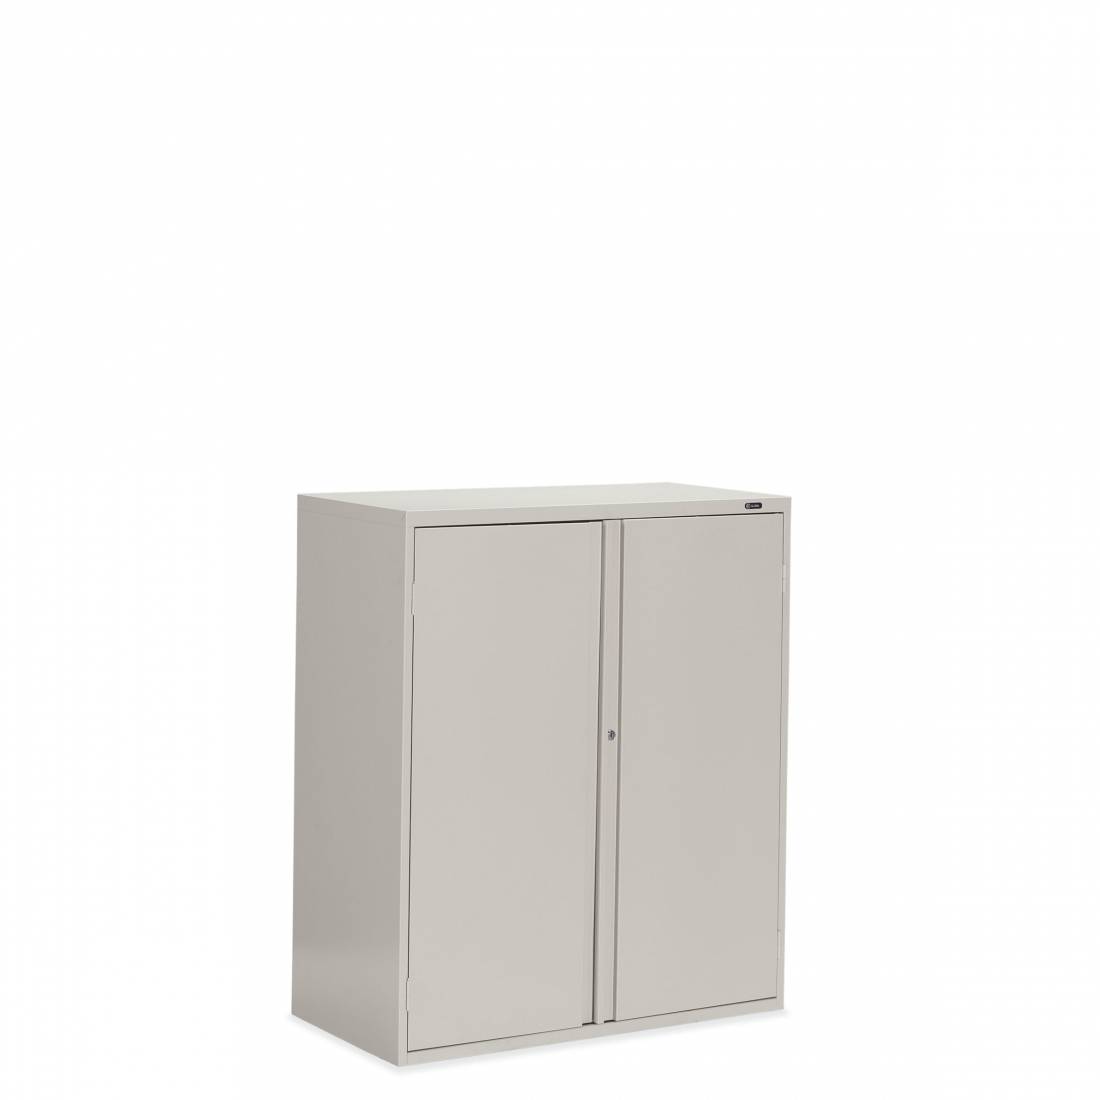 Global 9100 Series Storage Cabinets